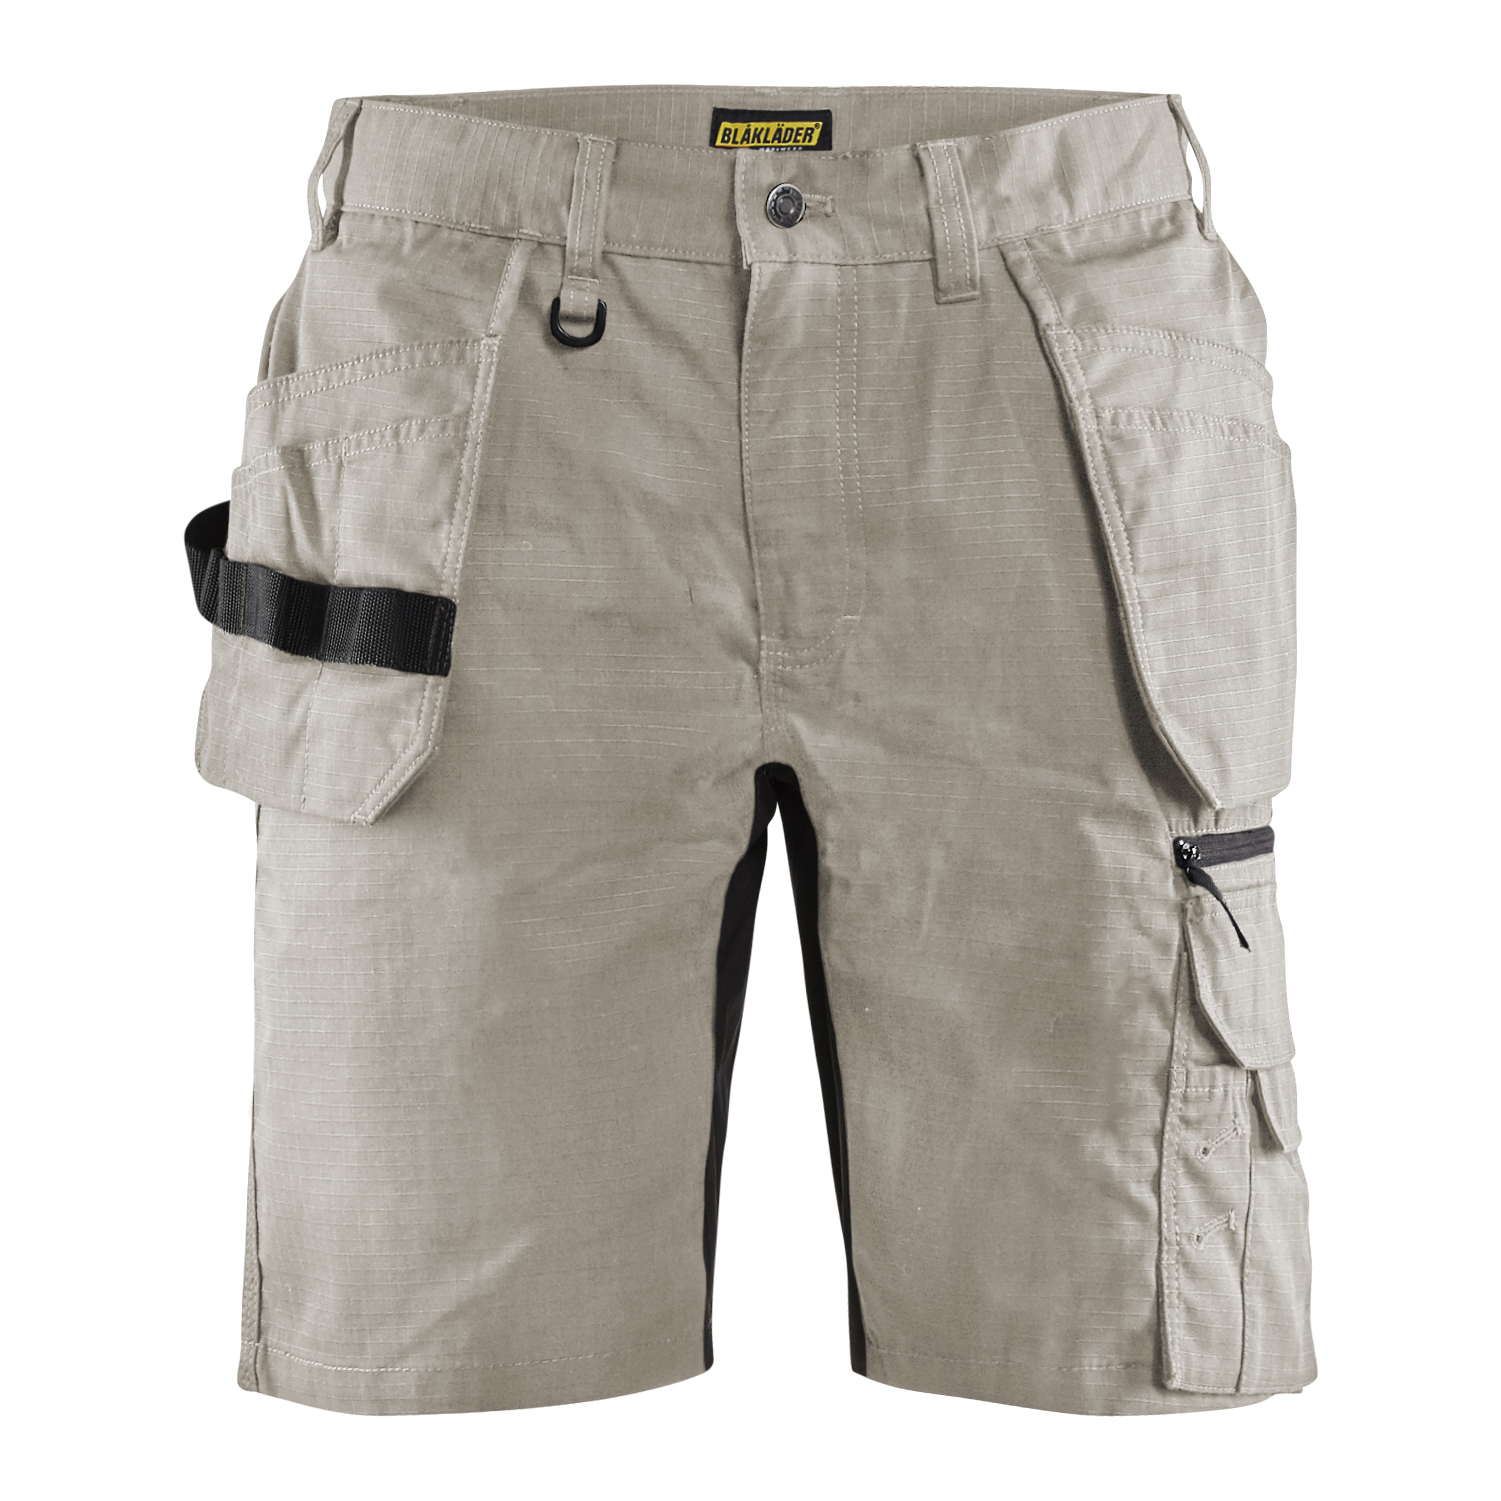 BLAKLADER Rip Stop Stretch Short with Utility Pockets